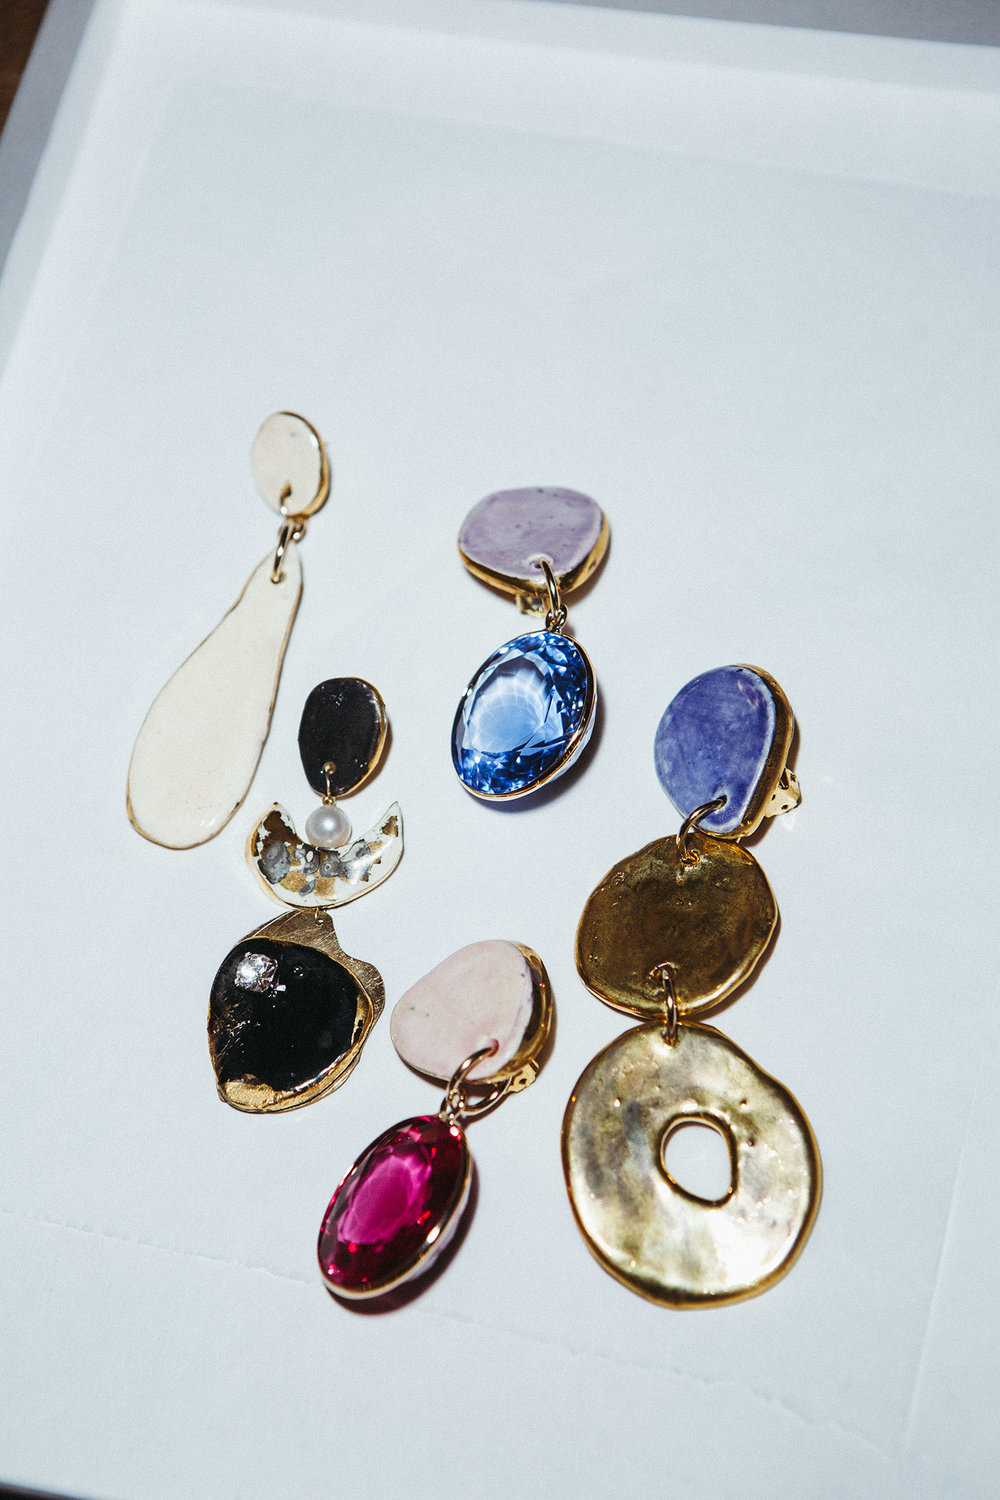 Earrings by Boyajian.  (Photo: G. L. Askew II/Surface)